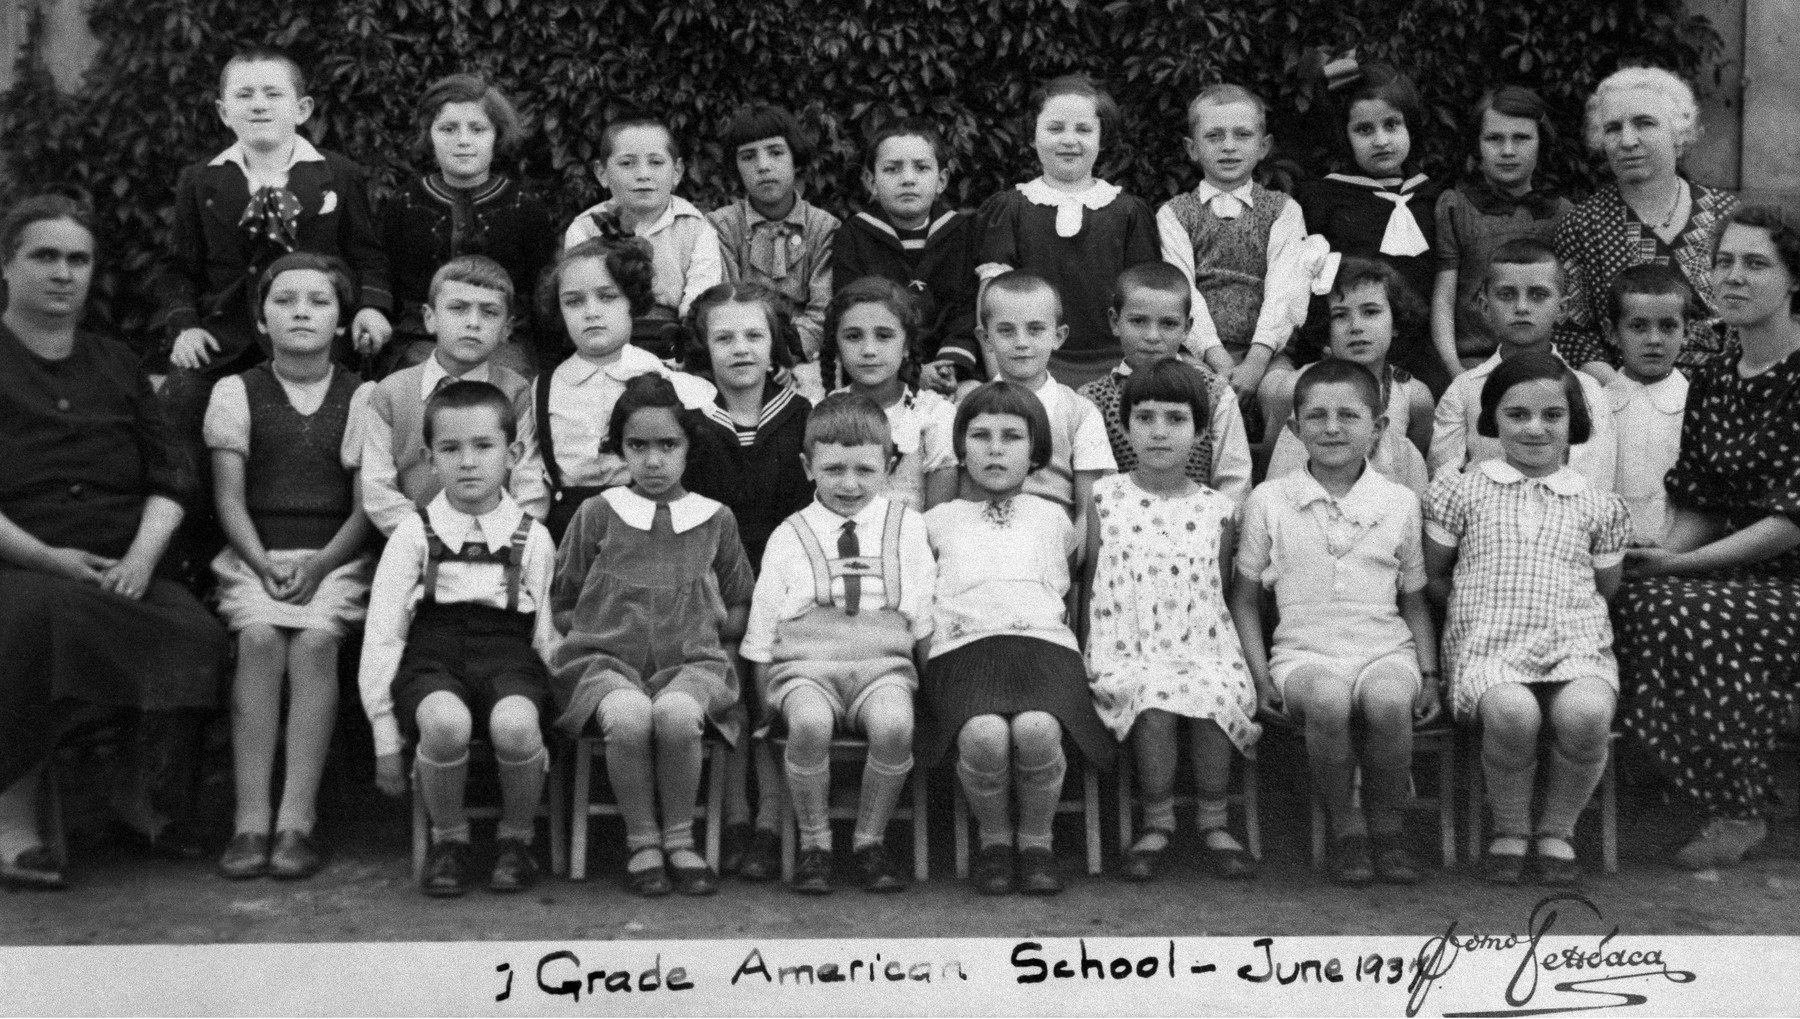 Class portrait of the first grade pupils at the American school in Sofia, Bulgaria.  Among those pictured is Israel Baruch (top row, left).